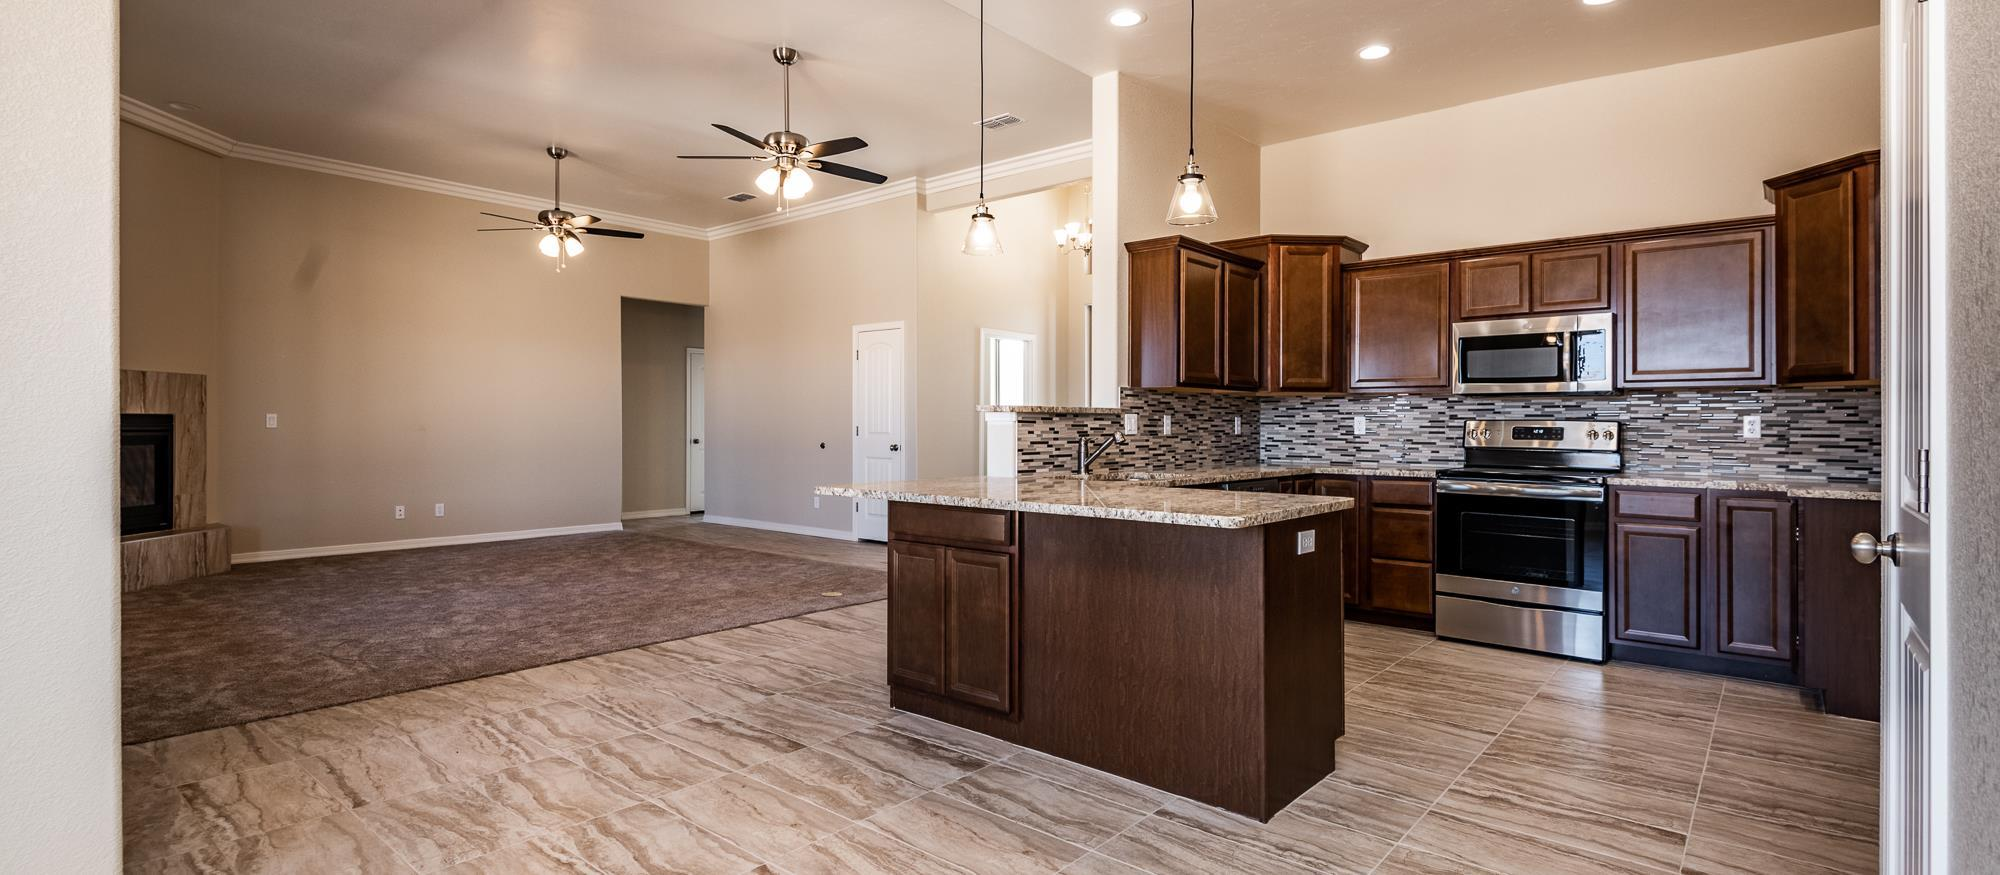 Kitchen featured in the Legacy Junior 2074 By Angle Homes in Kingman-Lake Havasu City, AZ